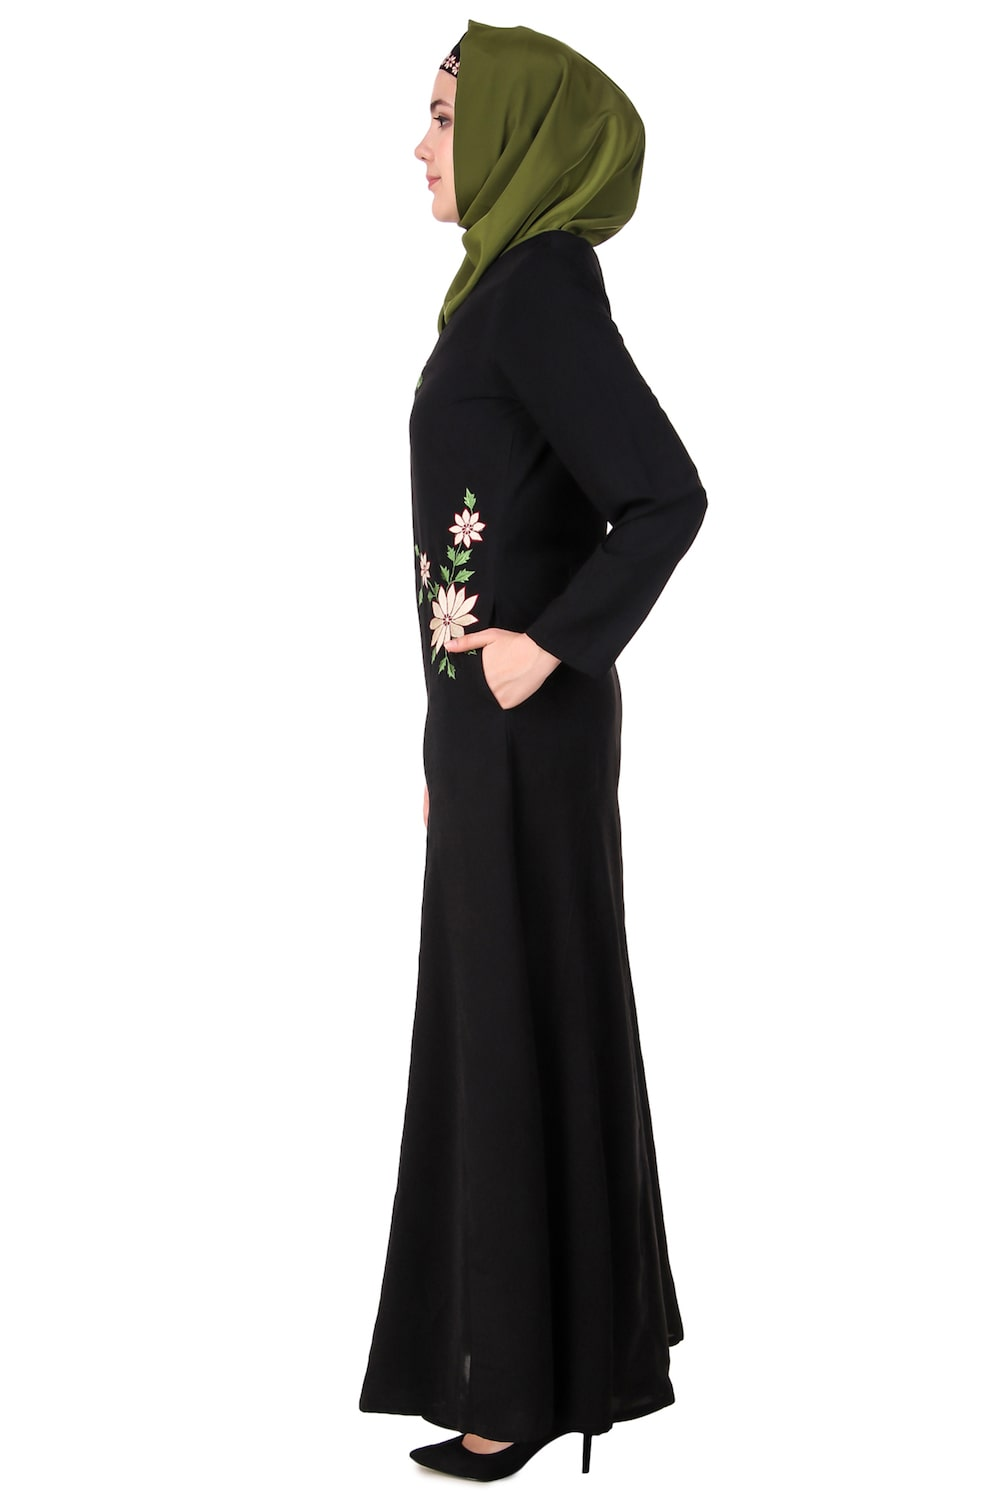 Floral Embroidery Nida Flared Abaya